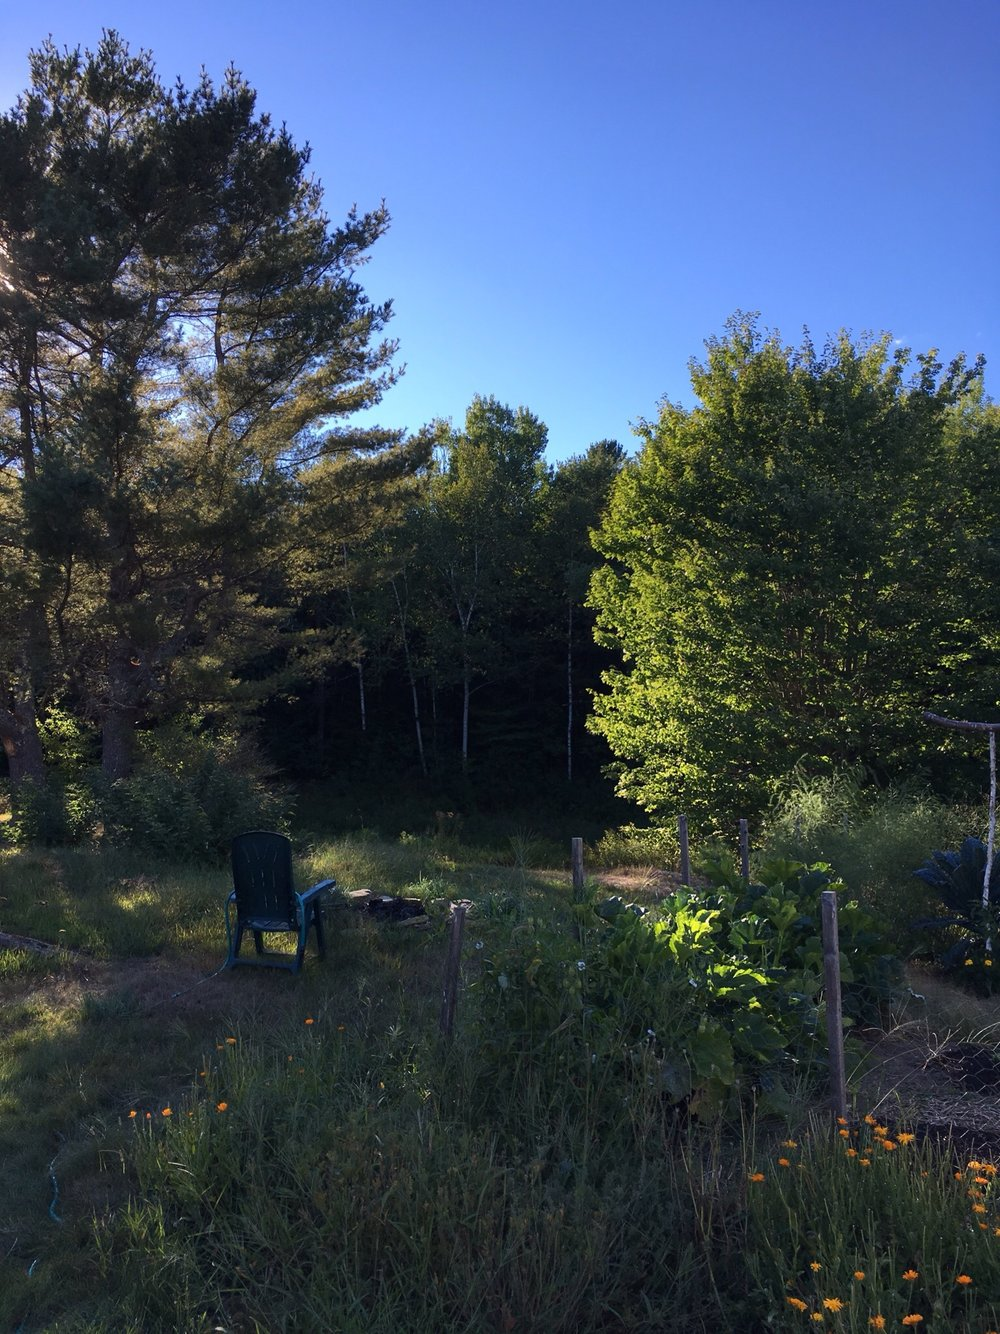 If you've ever visited my parents in the growing season, you were most likely given a garden tour. In the family tradition, here's a virtual tour of our kitchen garden. This is the end closest to the pond (completely dry in this drought), the twin pines, and the fire pit. The outside beds contain various still-blooming calendula varieties and gone-by poppies (California and corn). In the garden is the zucchini patch in the foreground and asparagus in the back.